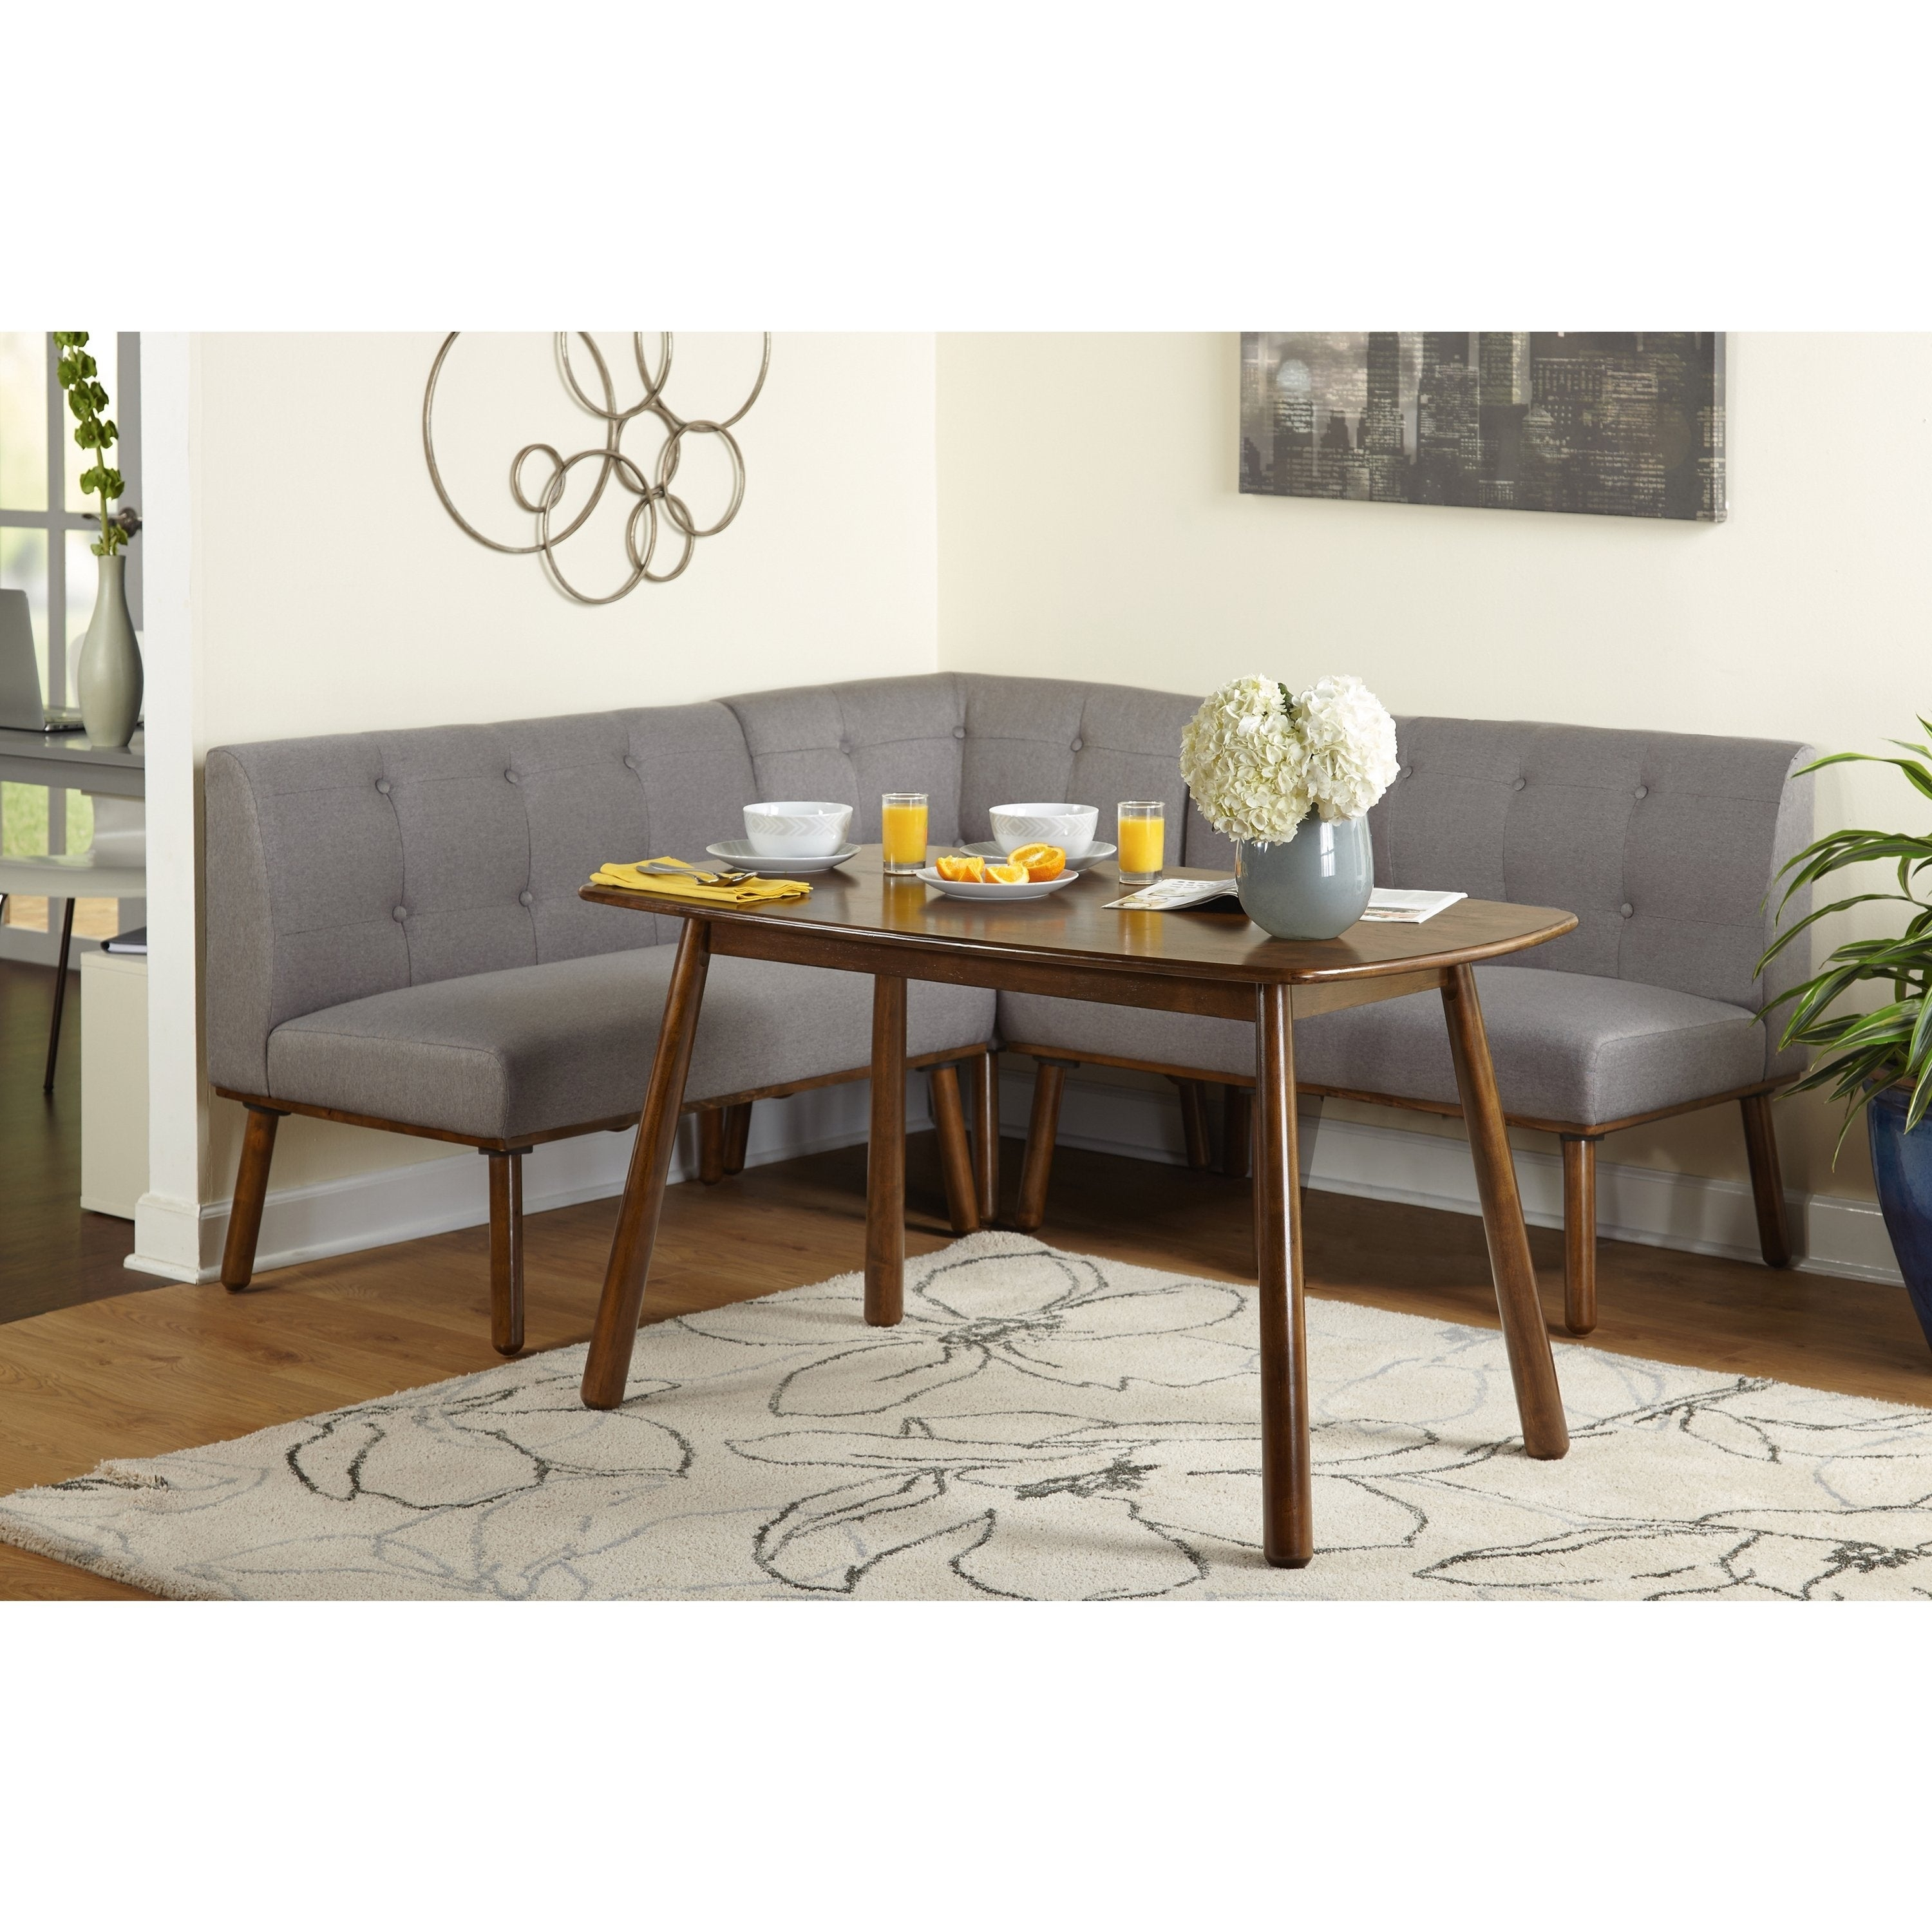 3 Piece Breakfast Nook Dinning Set With Well Known Buy Breakfast Nook, 3 Piece Sets Kitchen & Dining Room Sets Online (#5 of 20)